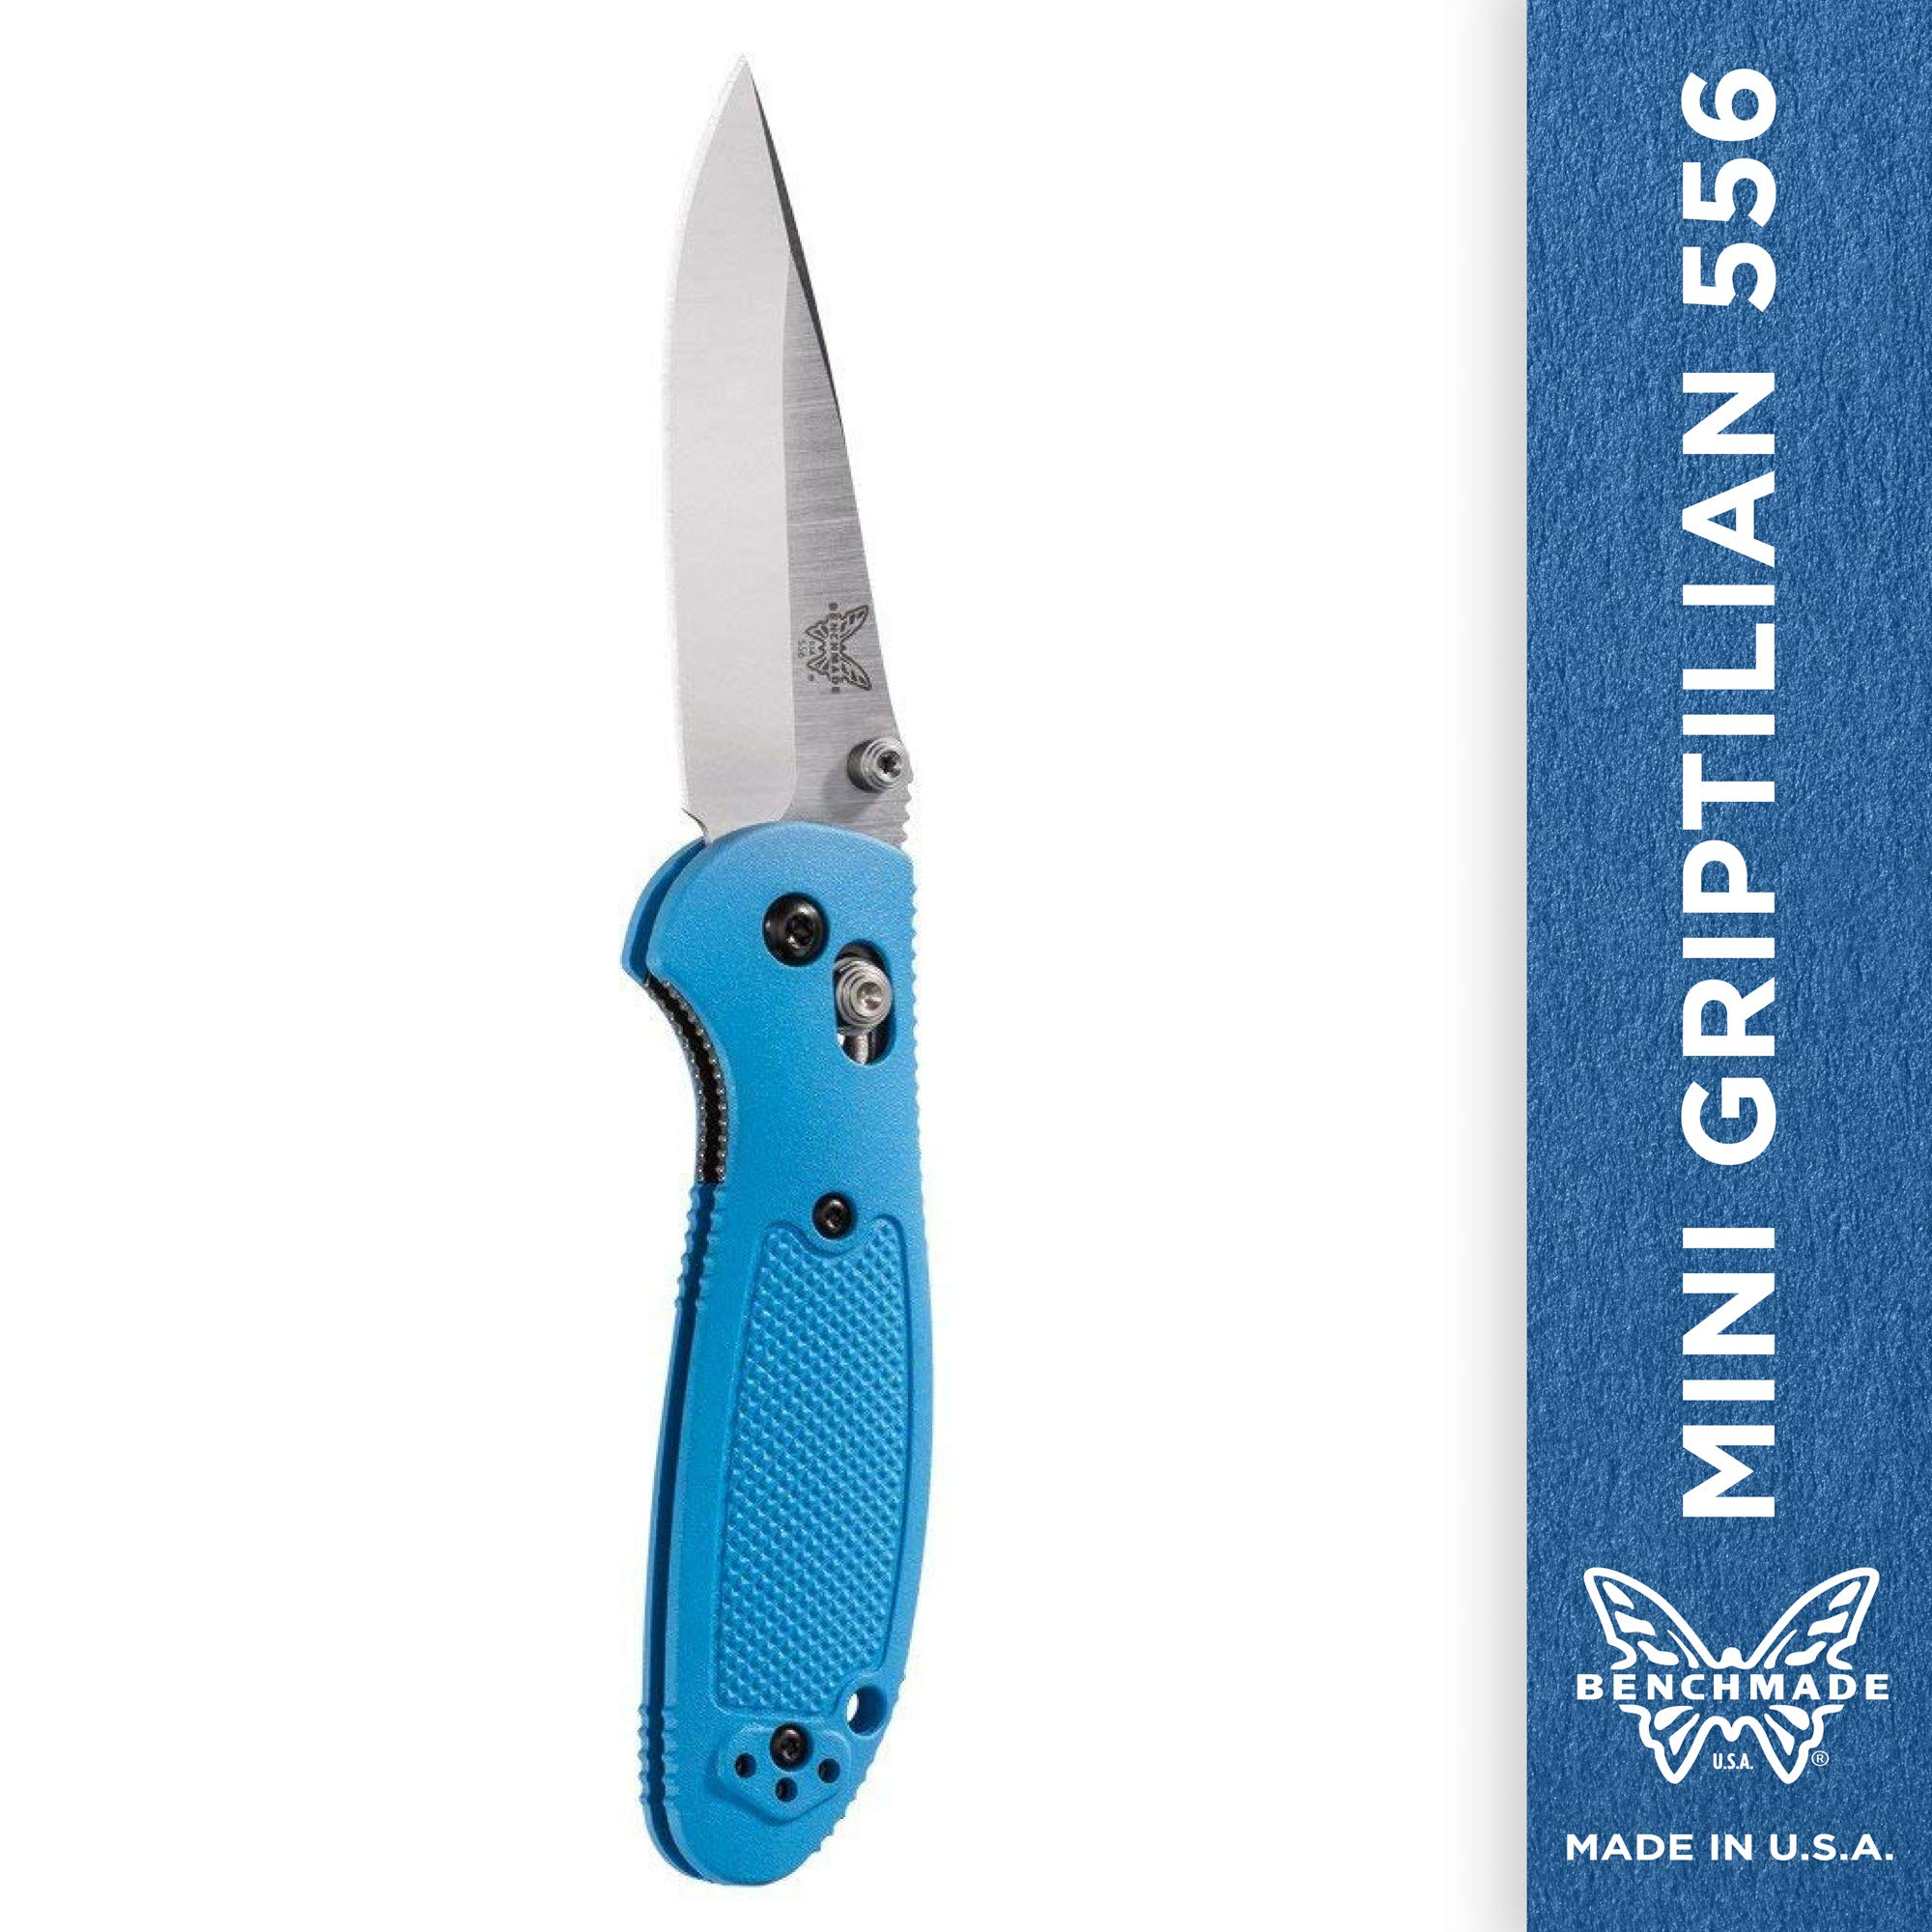 Benchmade - Mini Griptilian 556 EDC Manual Open Folding Knife Made in USA with CPM-S30V Steel, Drop-Point Blade, Plain Edge, Coated Finish, Sand Handle